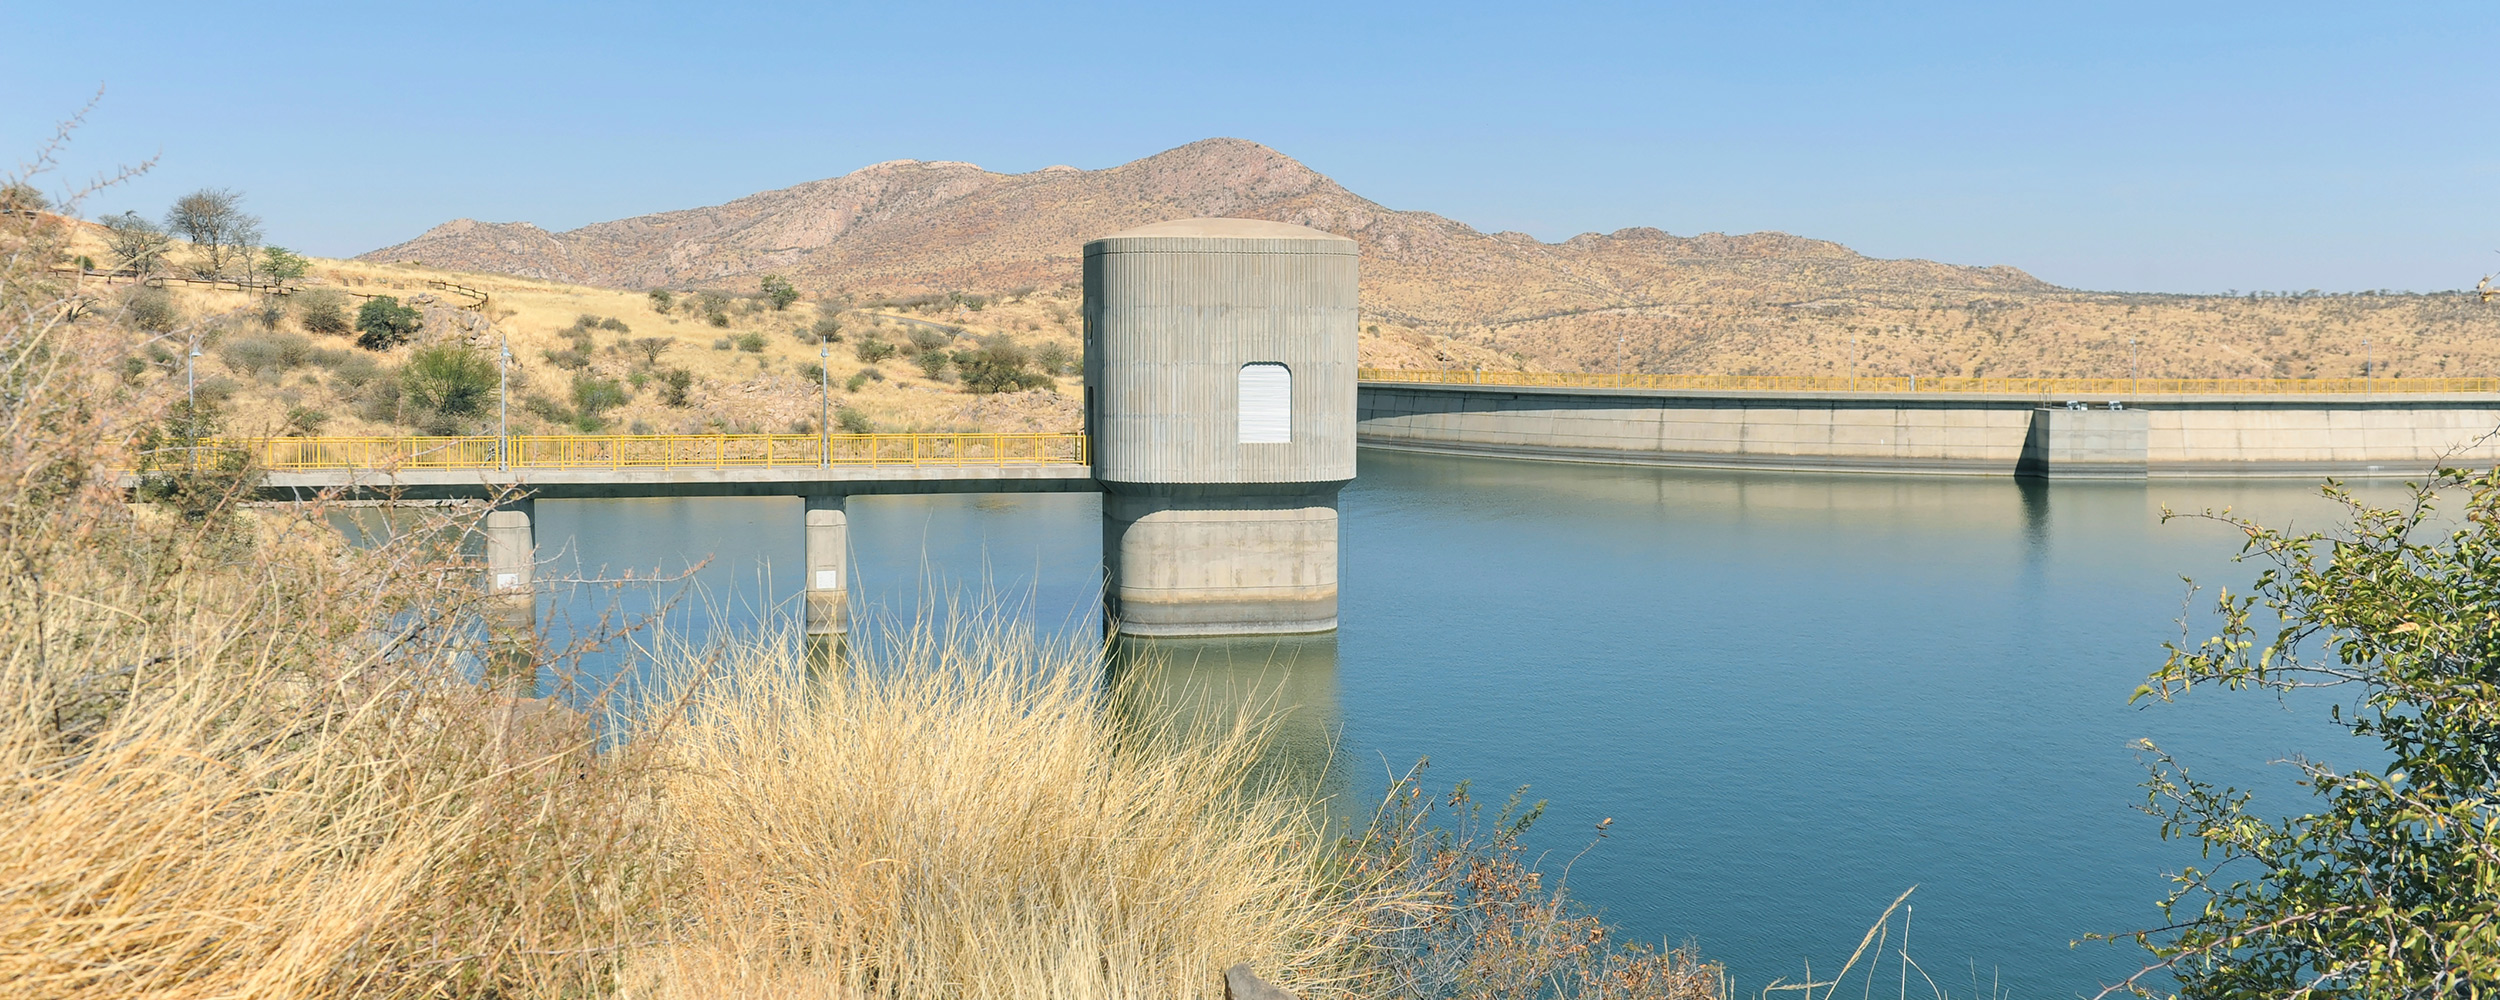 water resources management Water is fundamental to all life meeting the increasing human demand for water while ensuring its future availability and quality is a significant societal challenge.